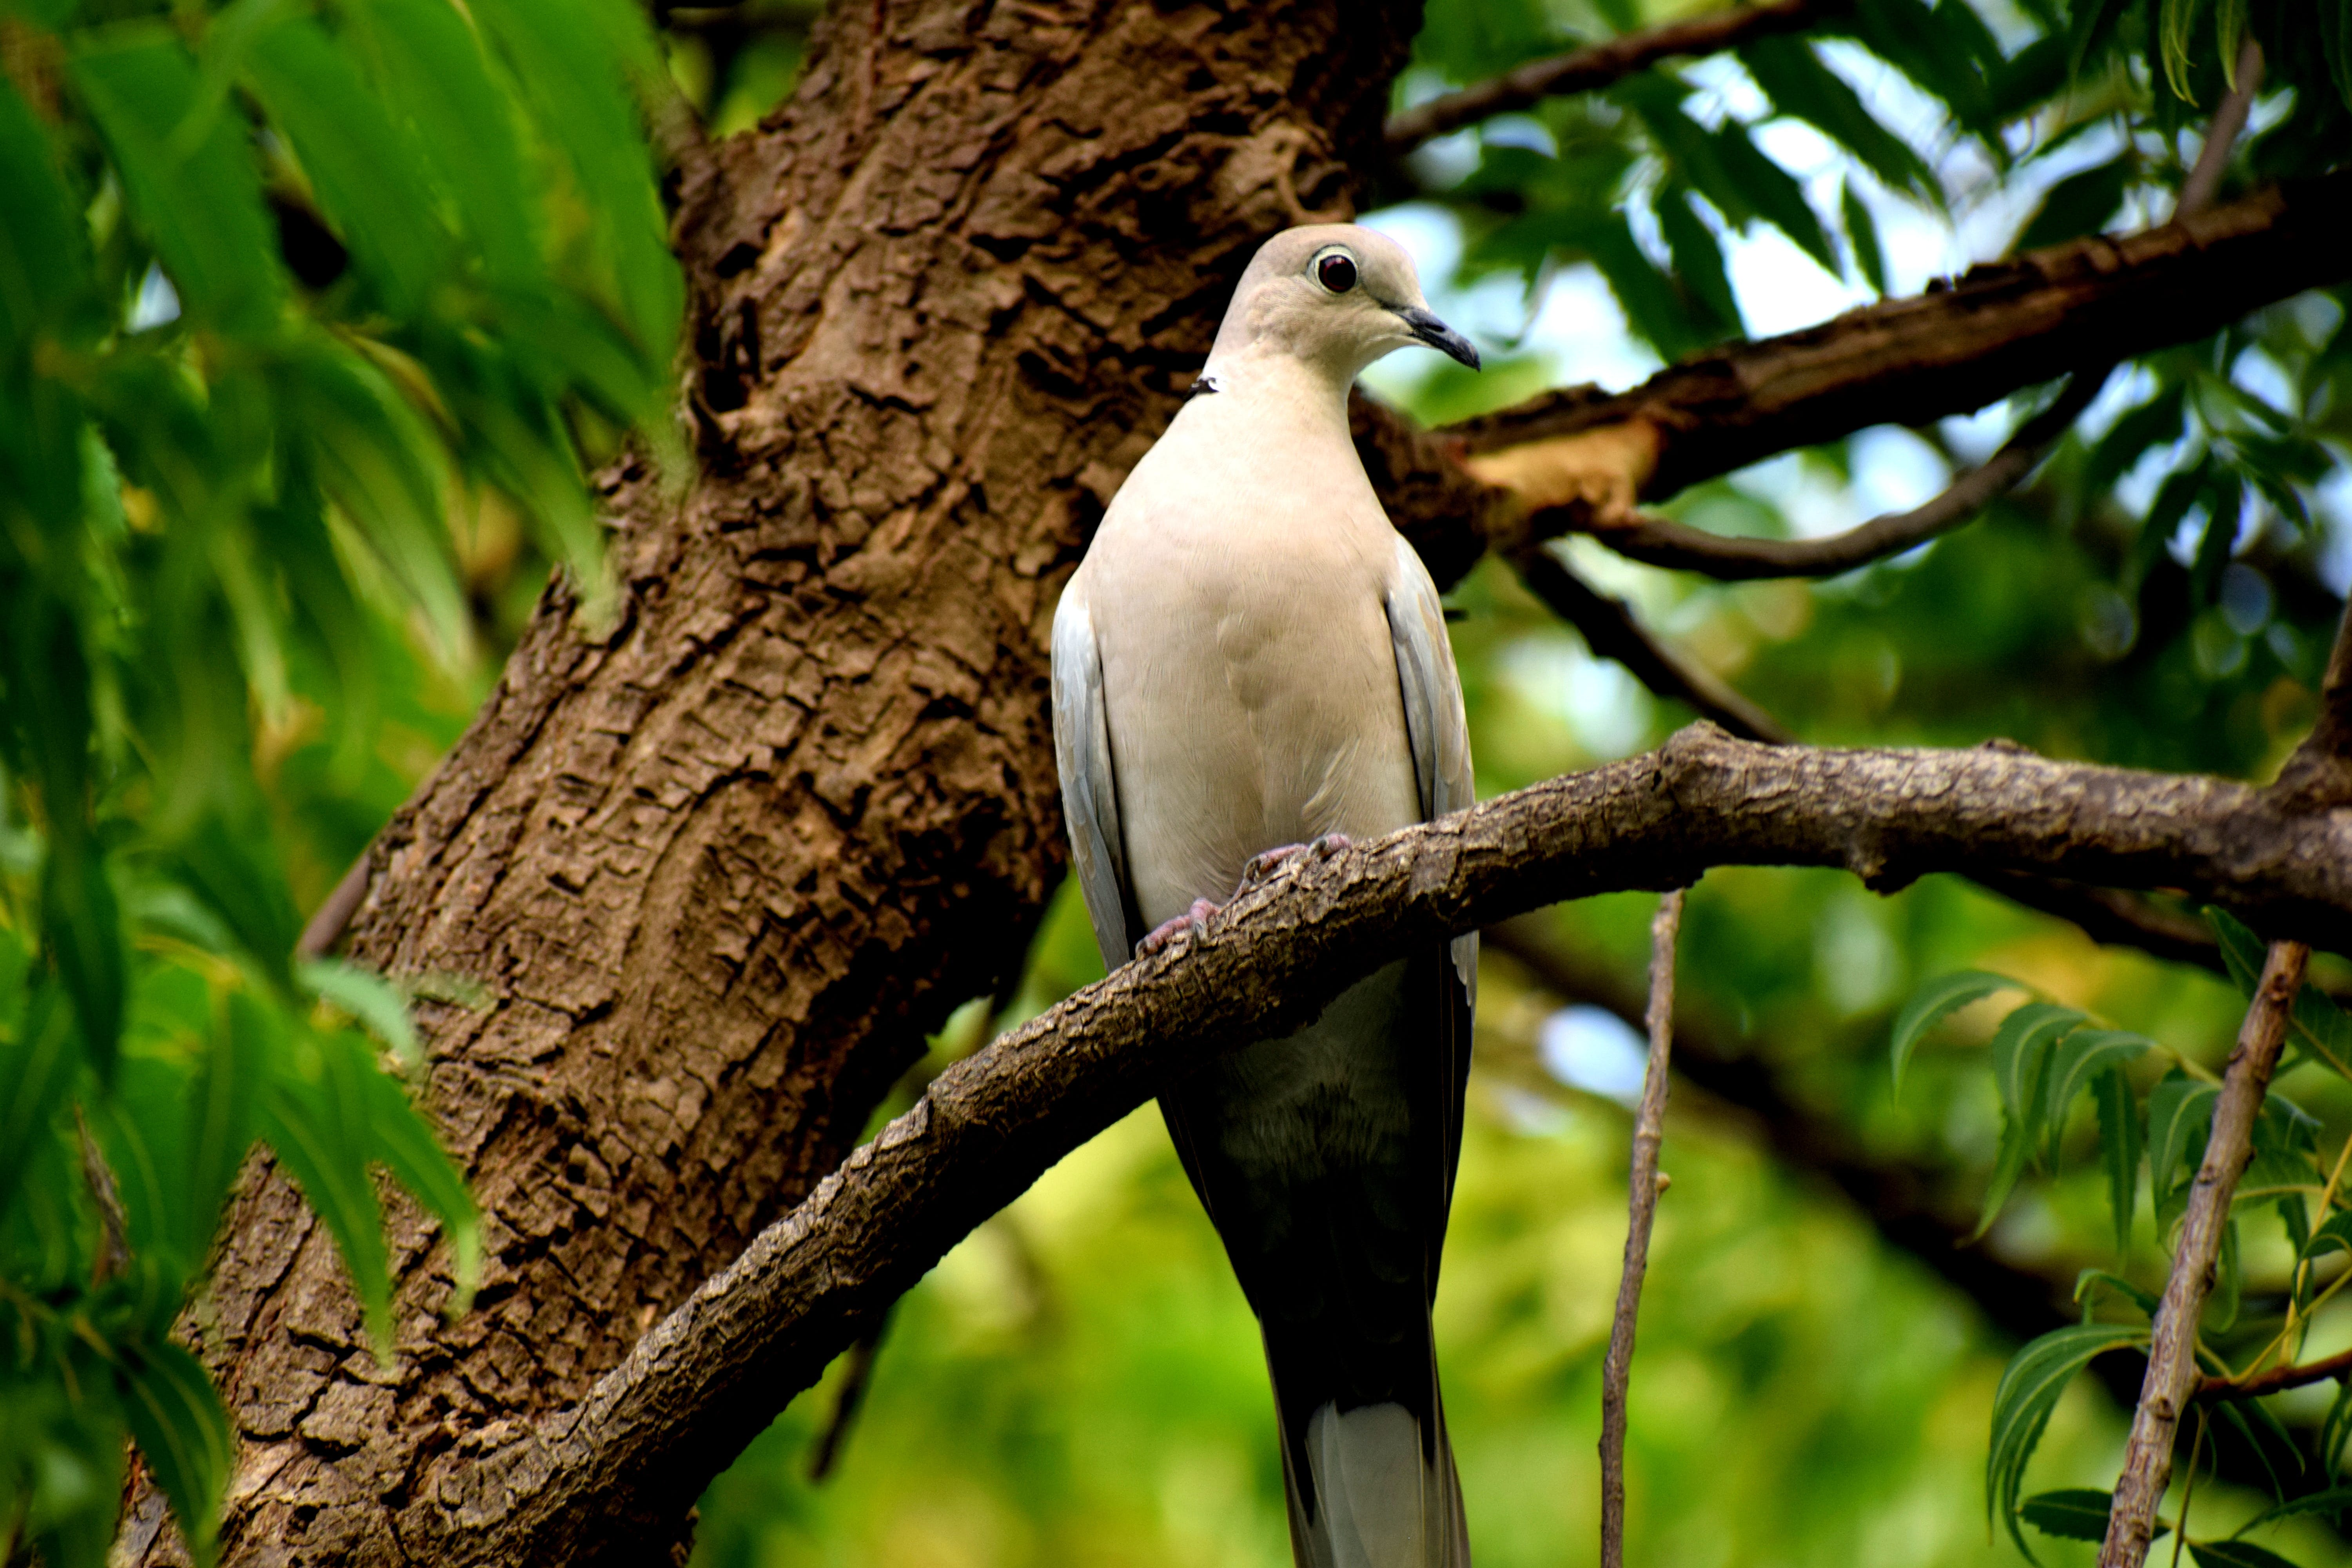 White and Grey Bird Perched on Tree